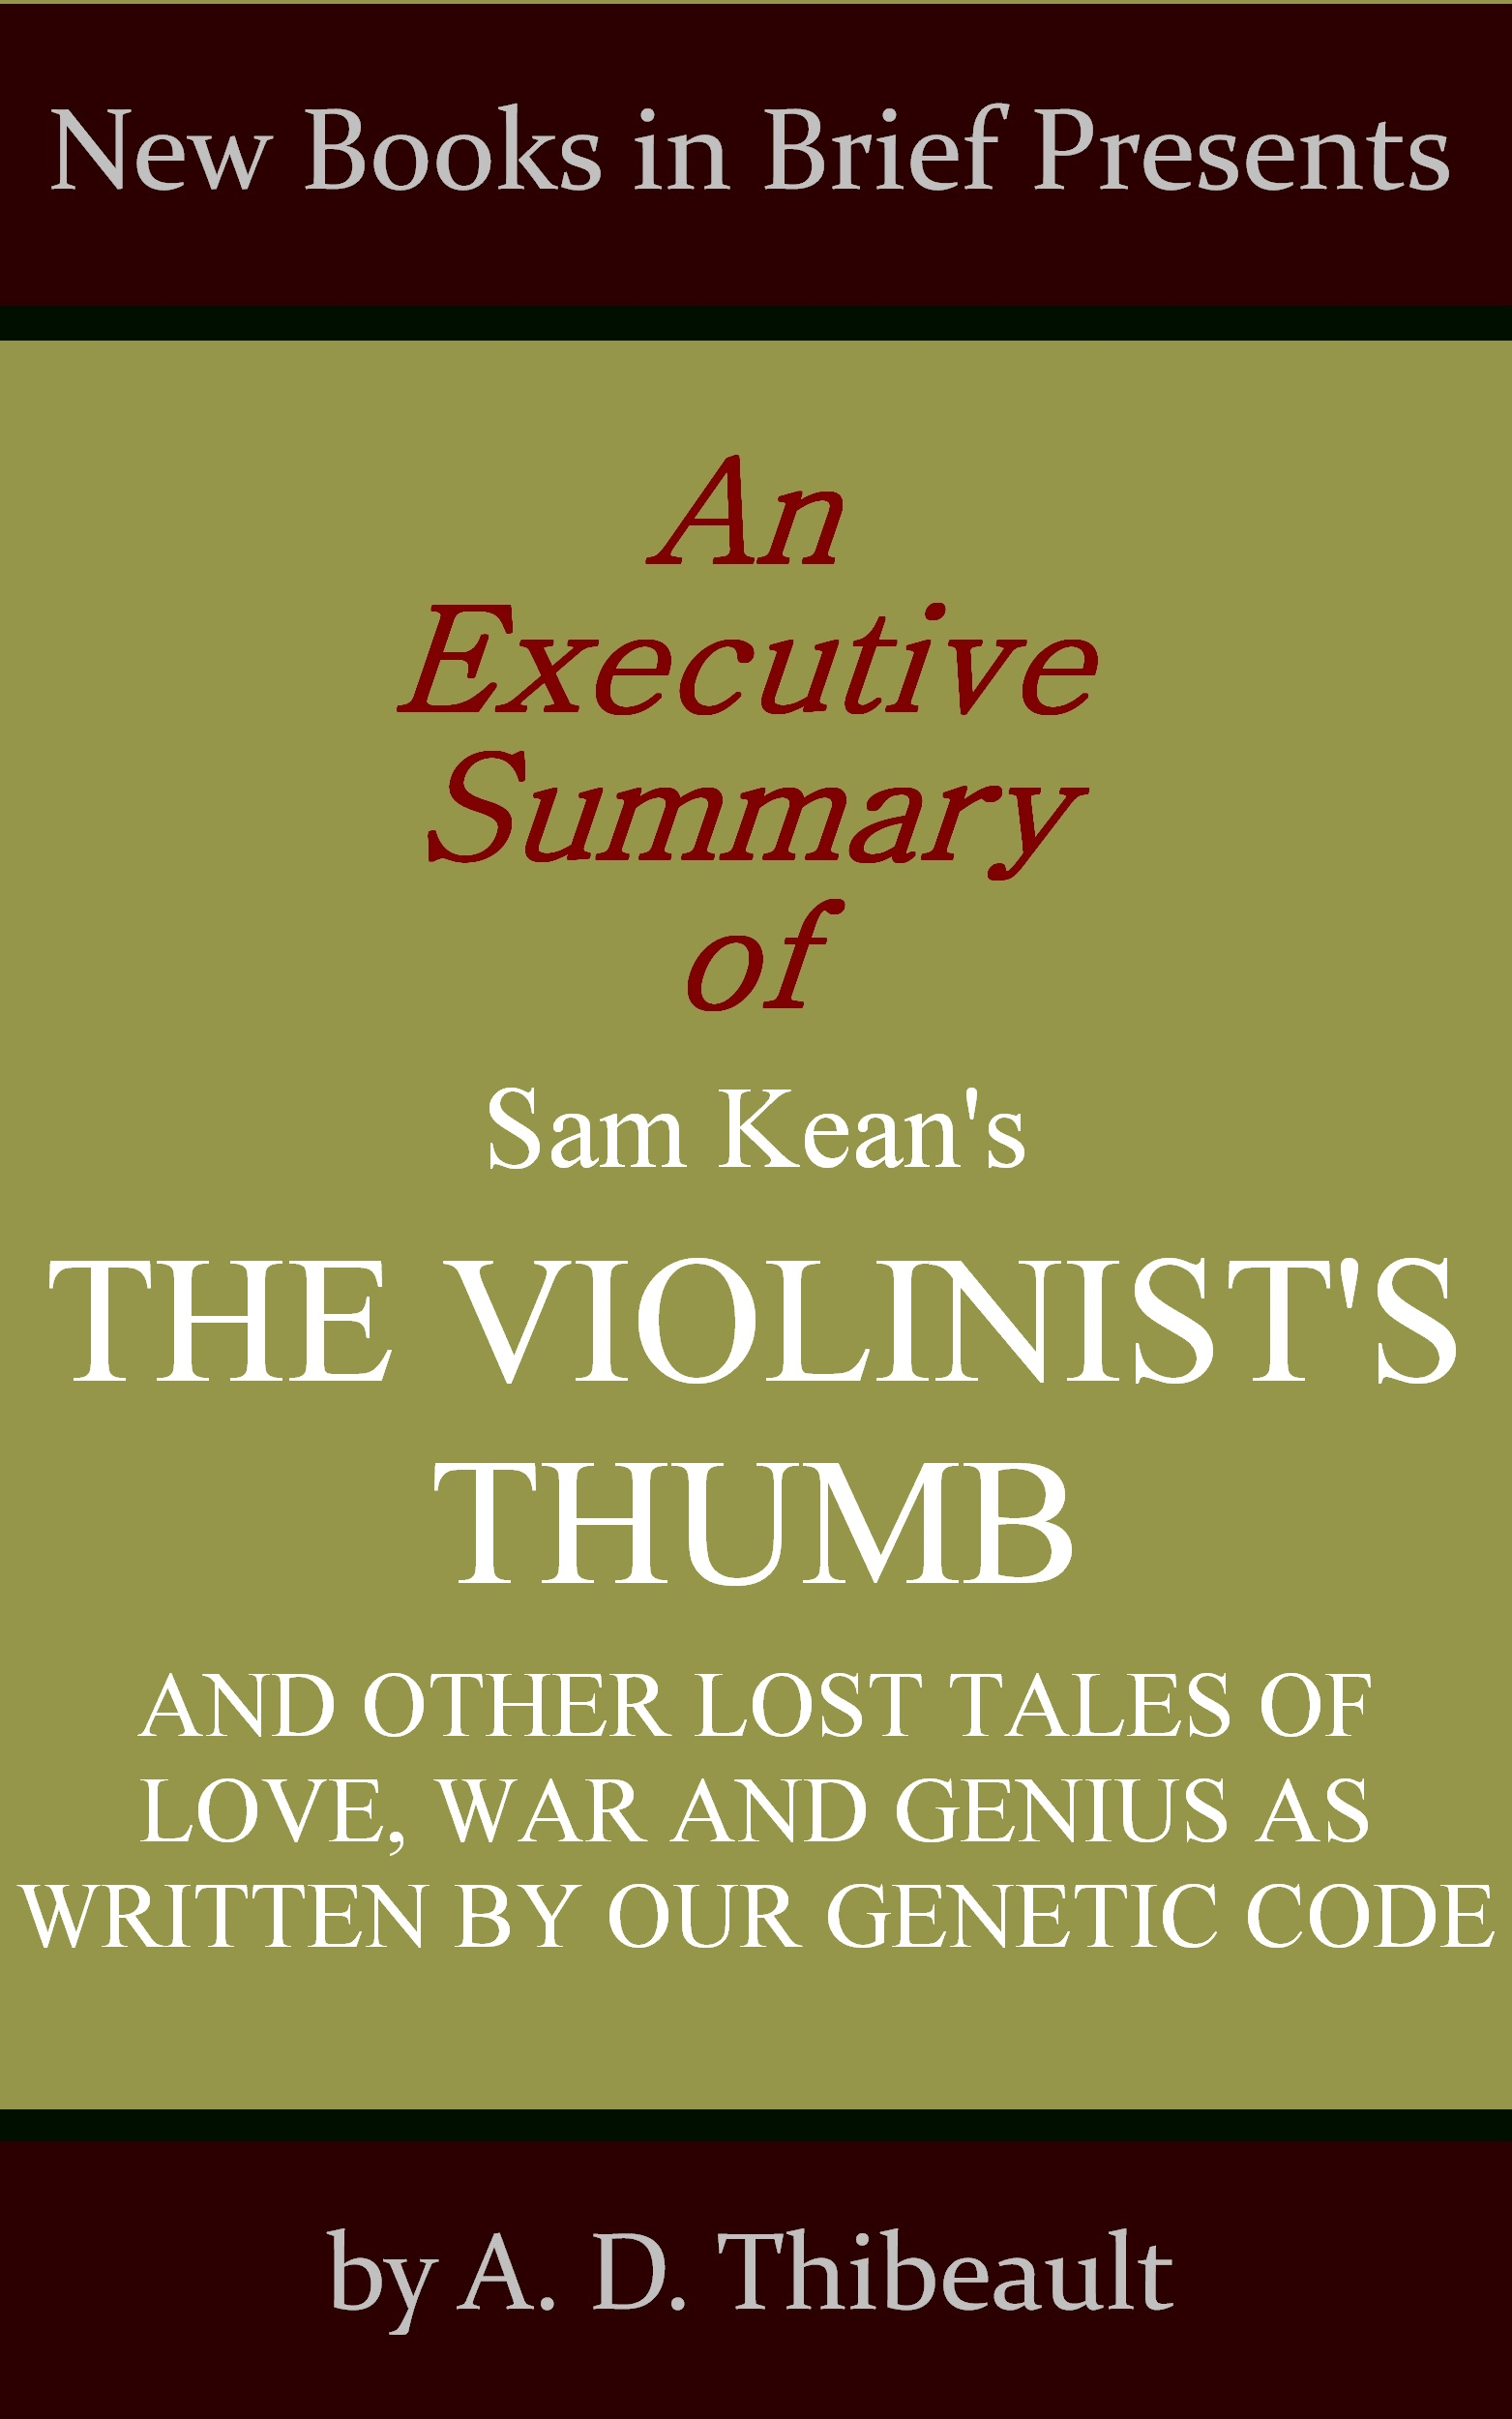 A. D. Thibeault - An Executive Summary of Sam Kean's 'The Violinist's Thumb: And Other Lost Tales of Love, War and Genius as Written by Our Genetic Code'